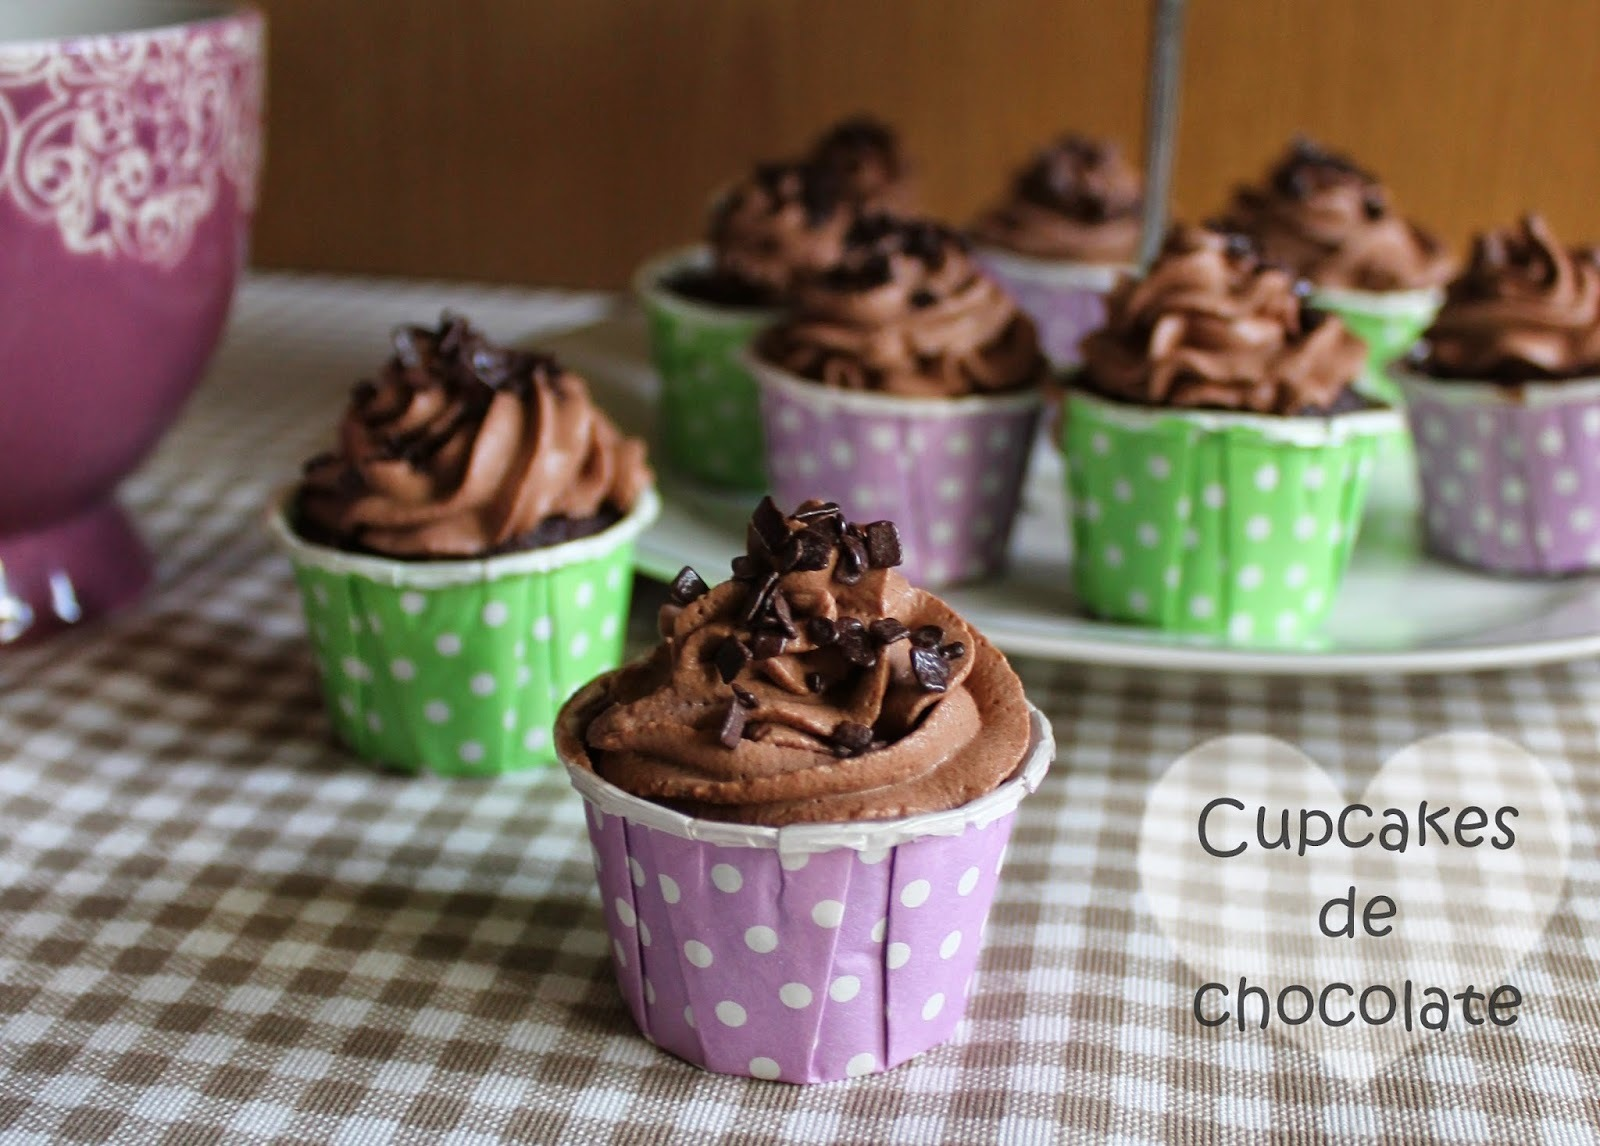 Mini cupcakes de chocolate y trufa